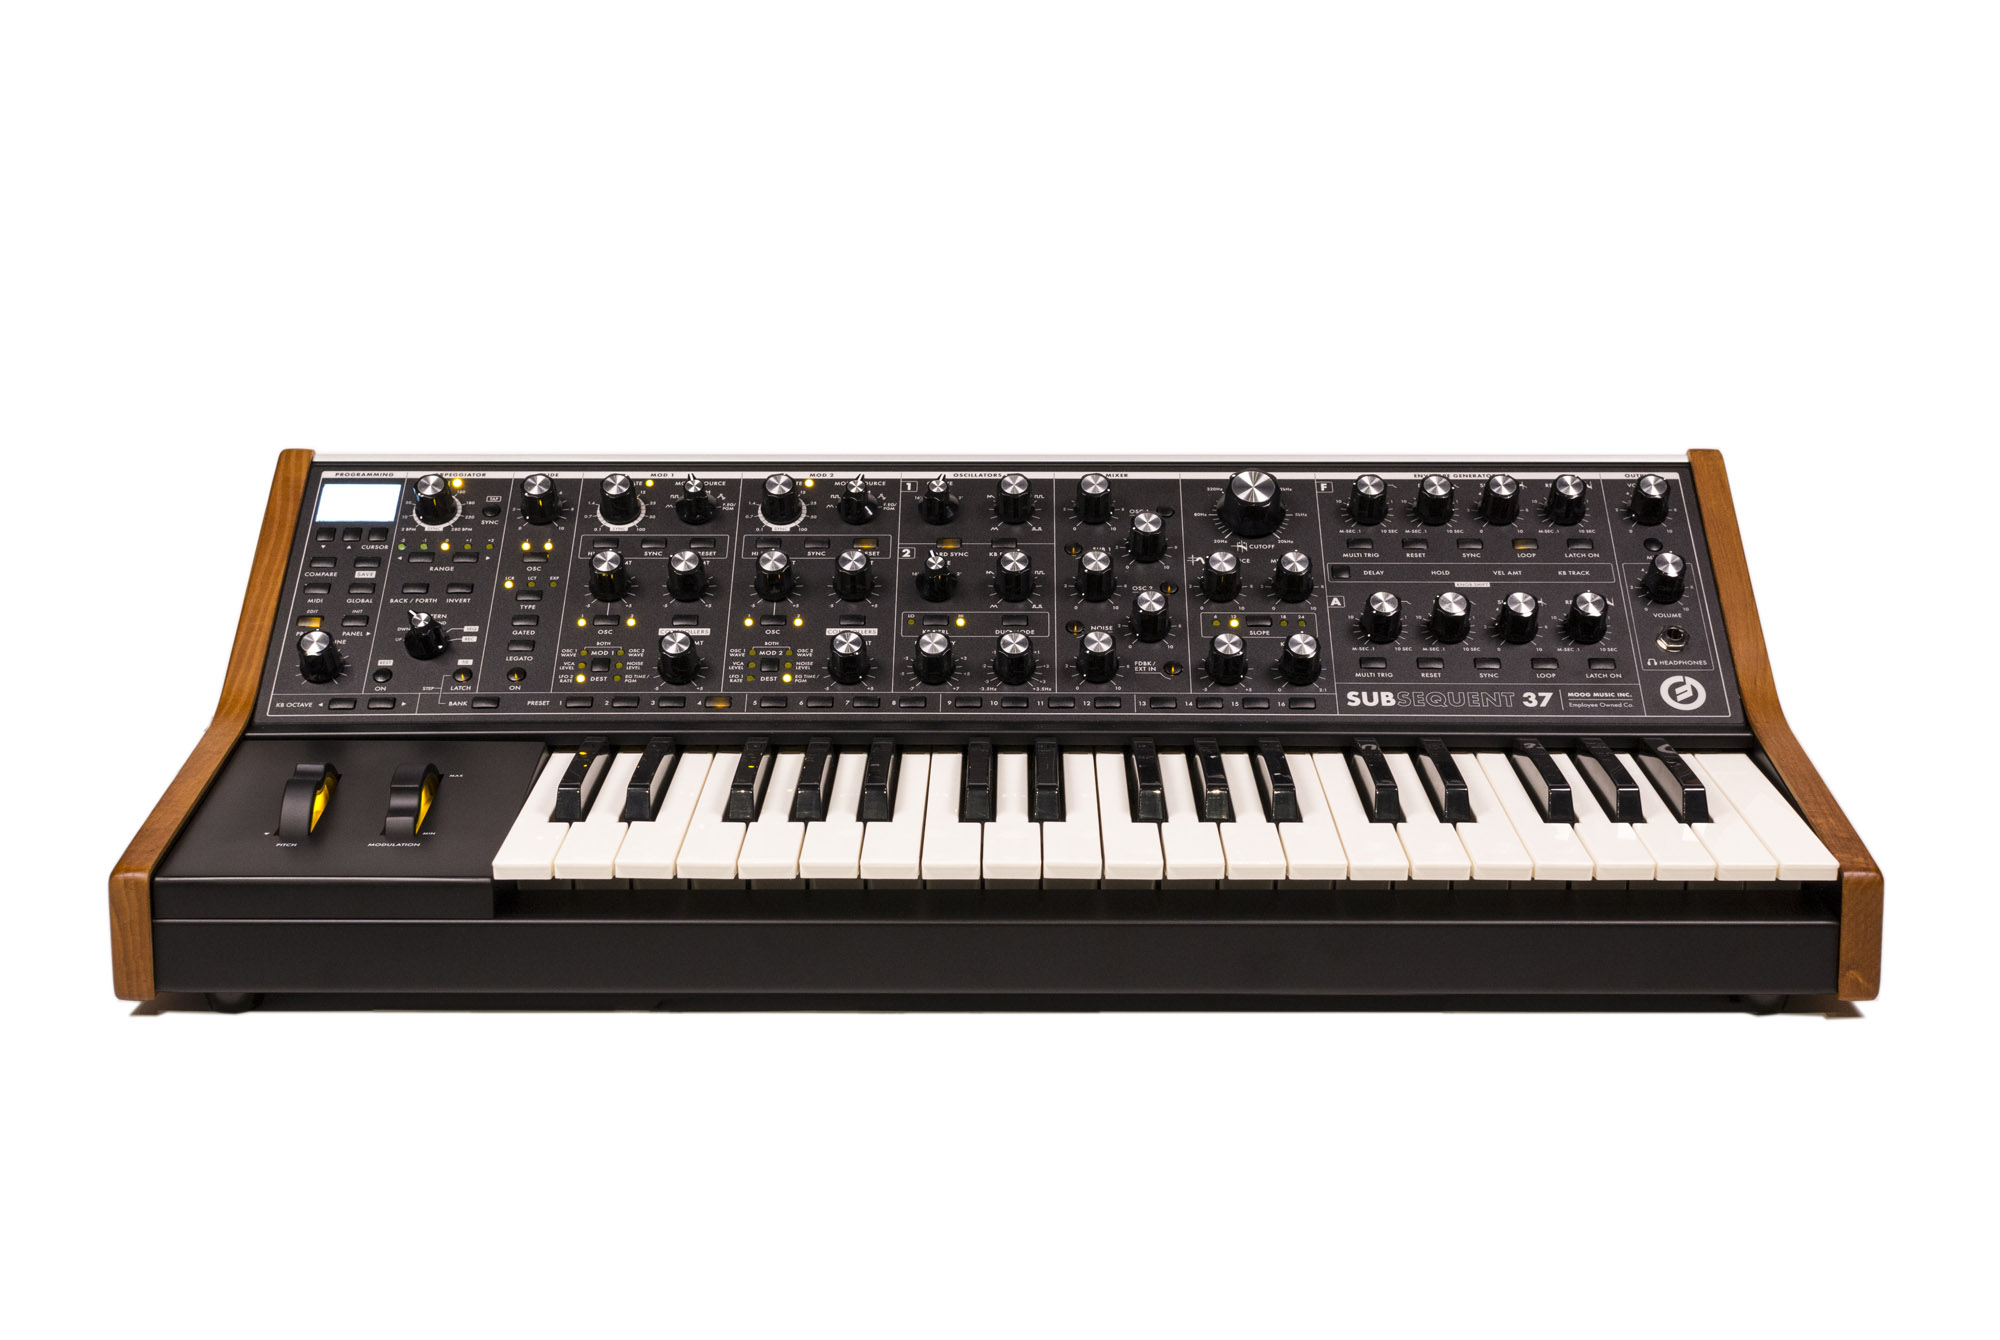 moogsubsequent37.jpg